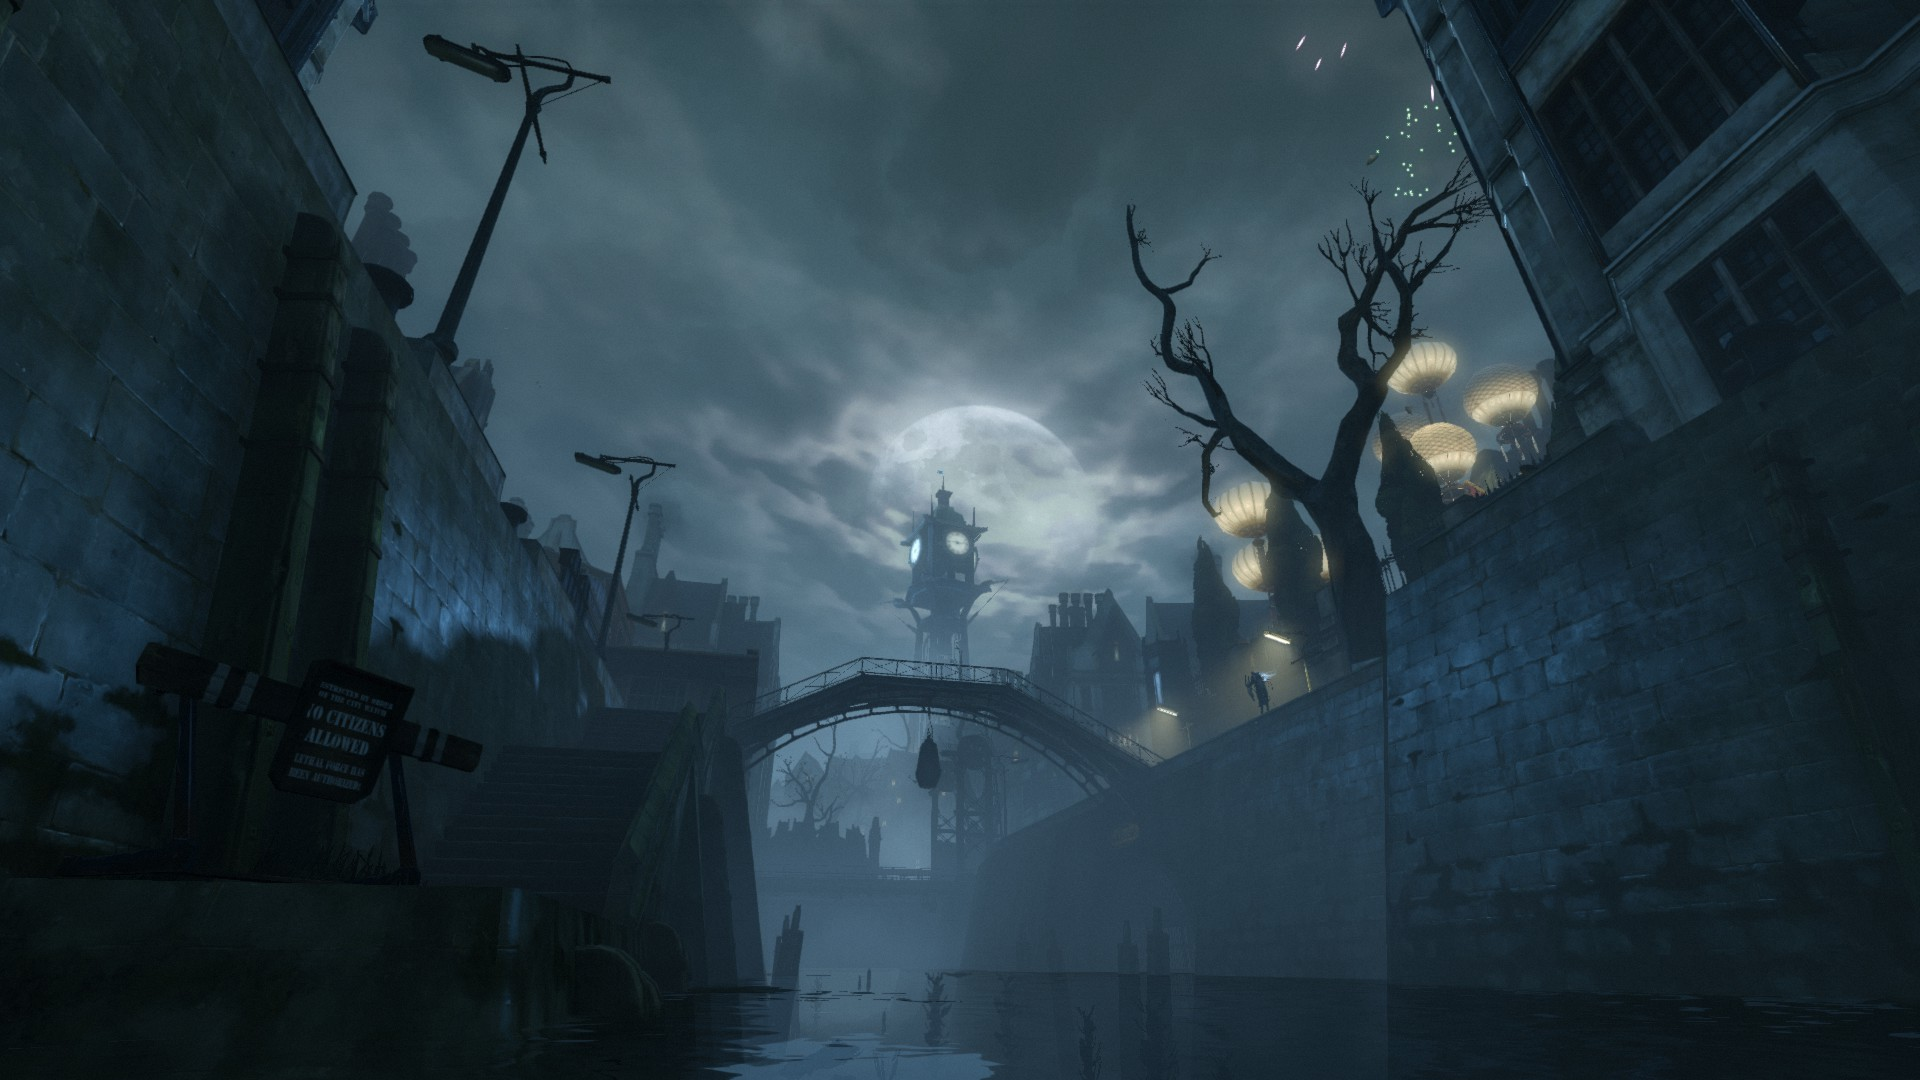 205100_screenshots_2015-08-24_00002.jpg - Dishonored